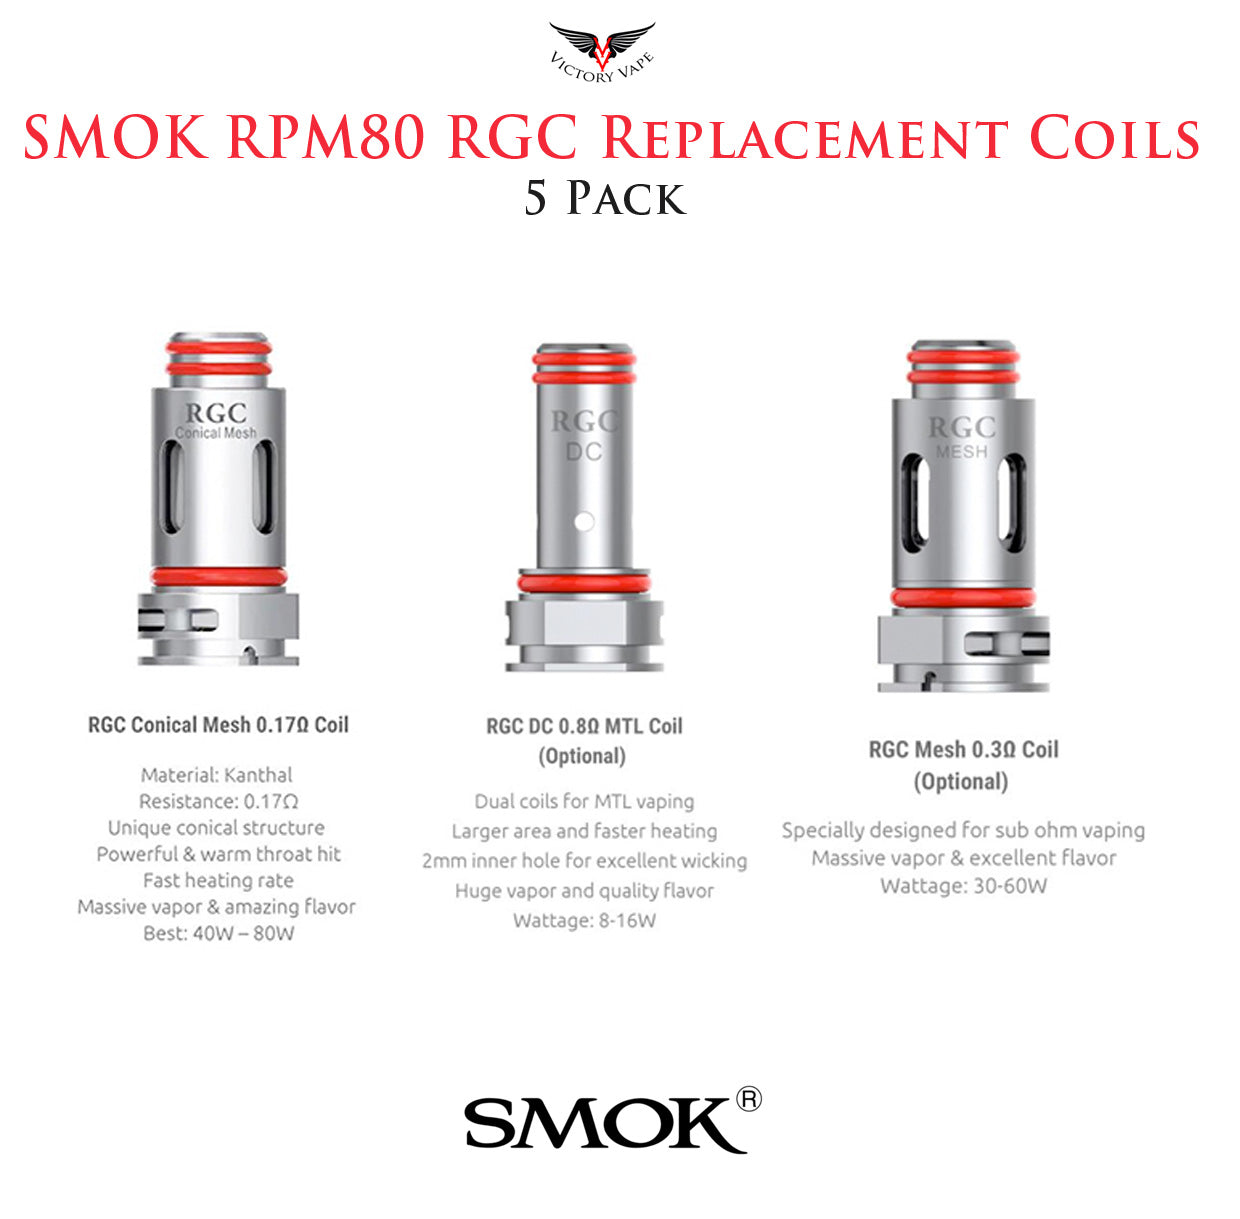 SMOK RGC Replacement Coils • 5 Pack (for RPM80 & RPM80 Pro)